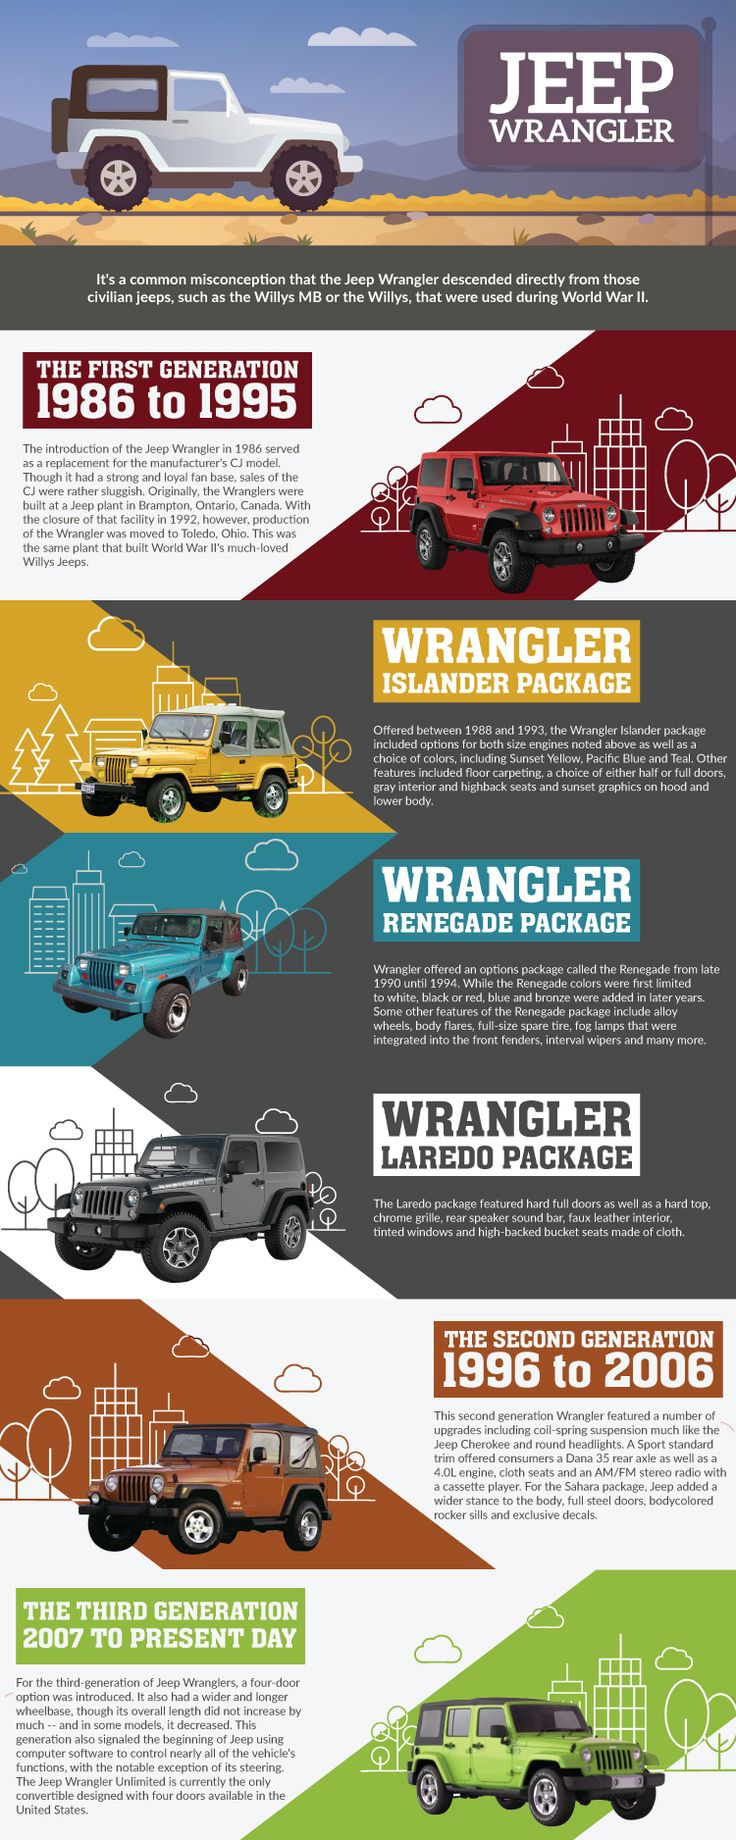 14 Best 4 Wheel Drive Images On Pinterest Jeep Stuff